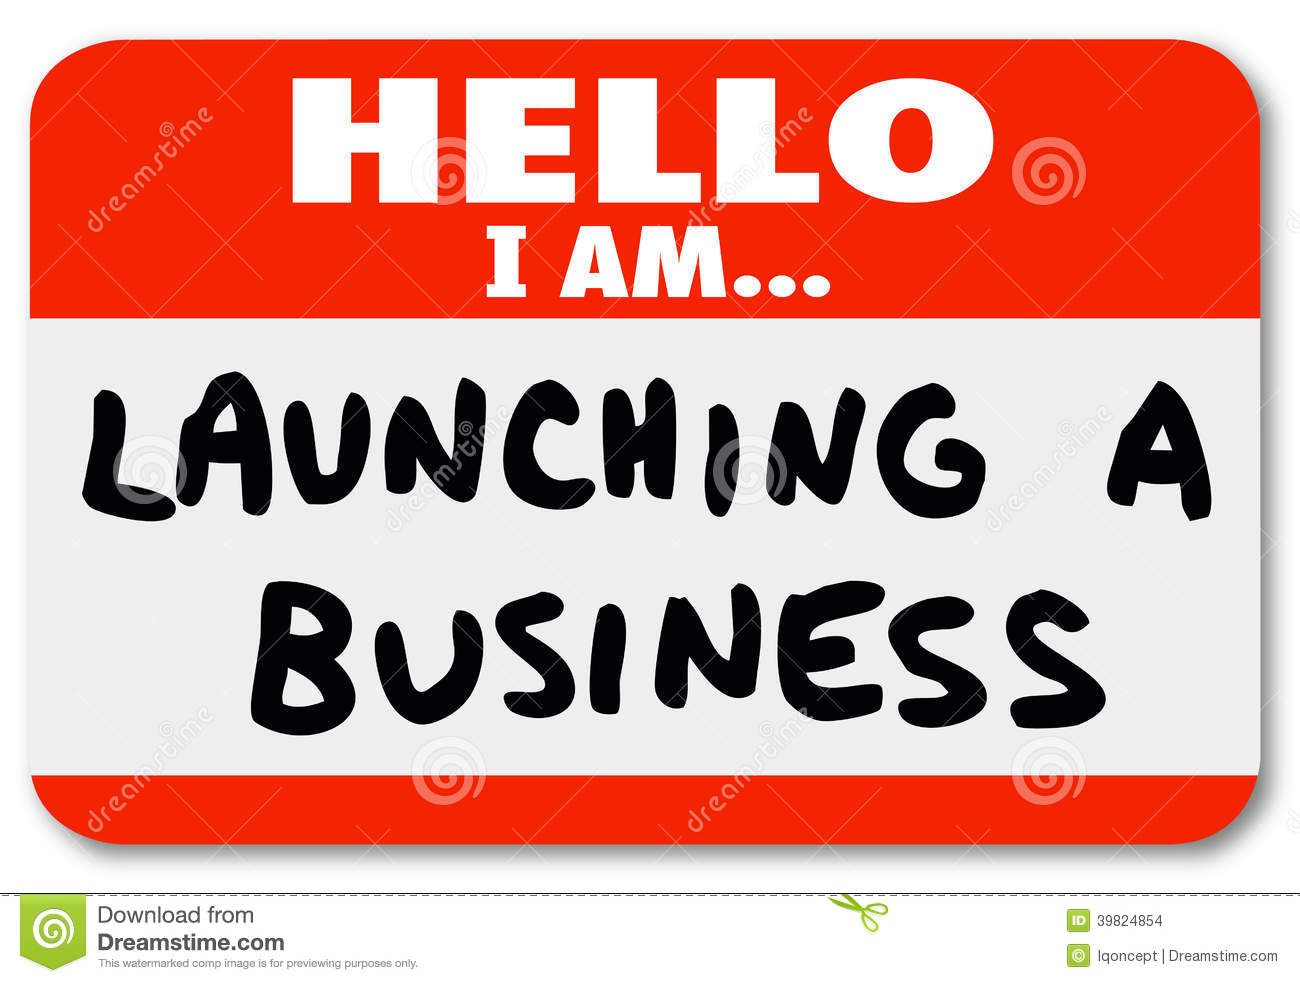 Business clipart new business Journey Journey Self an Business